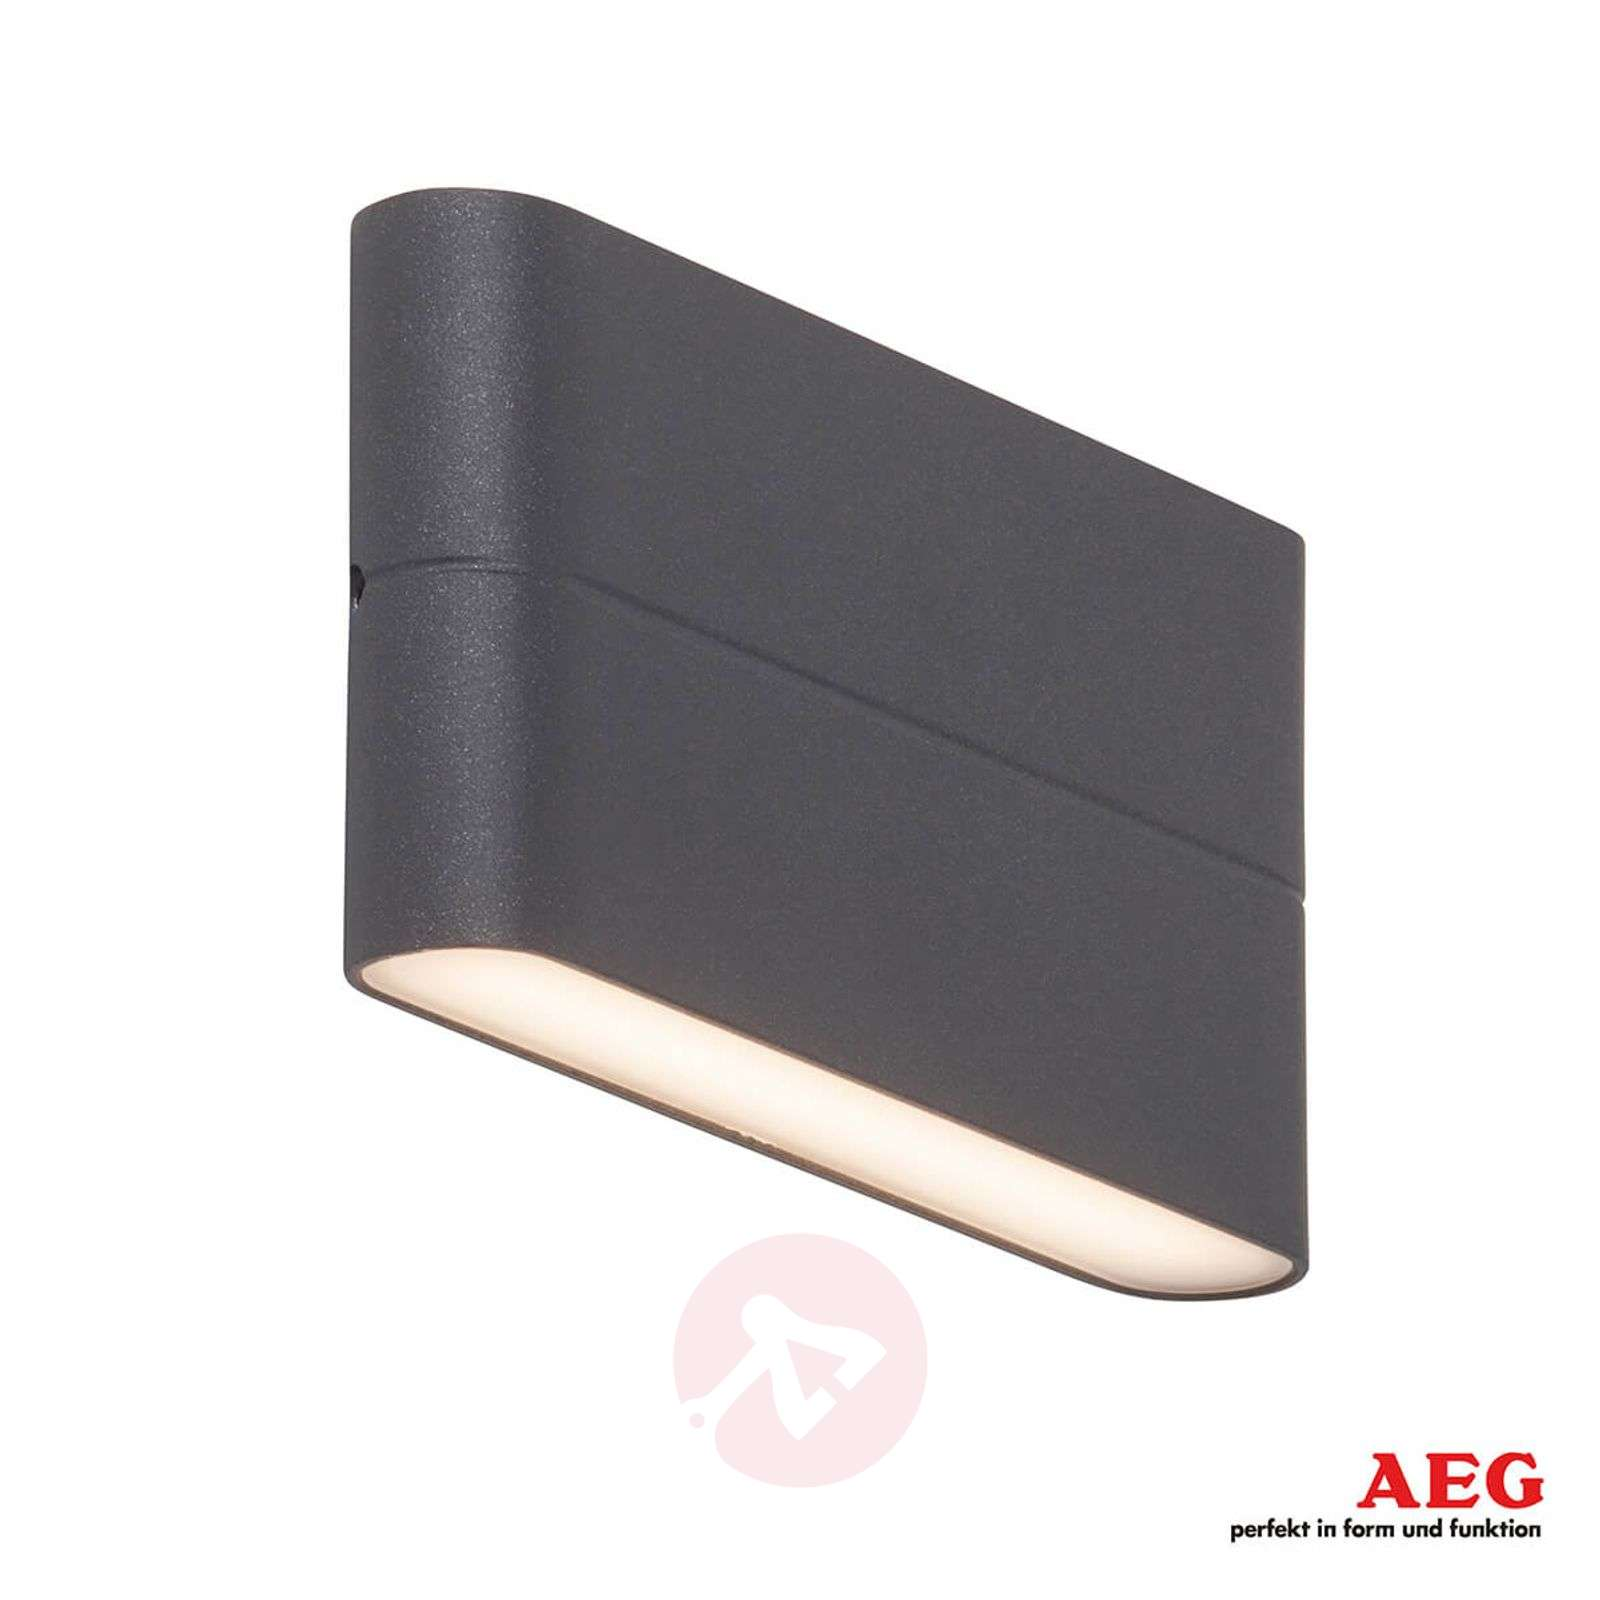 Telesto applique per esterni LED bidirezionale-3057122-01